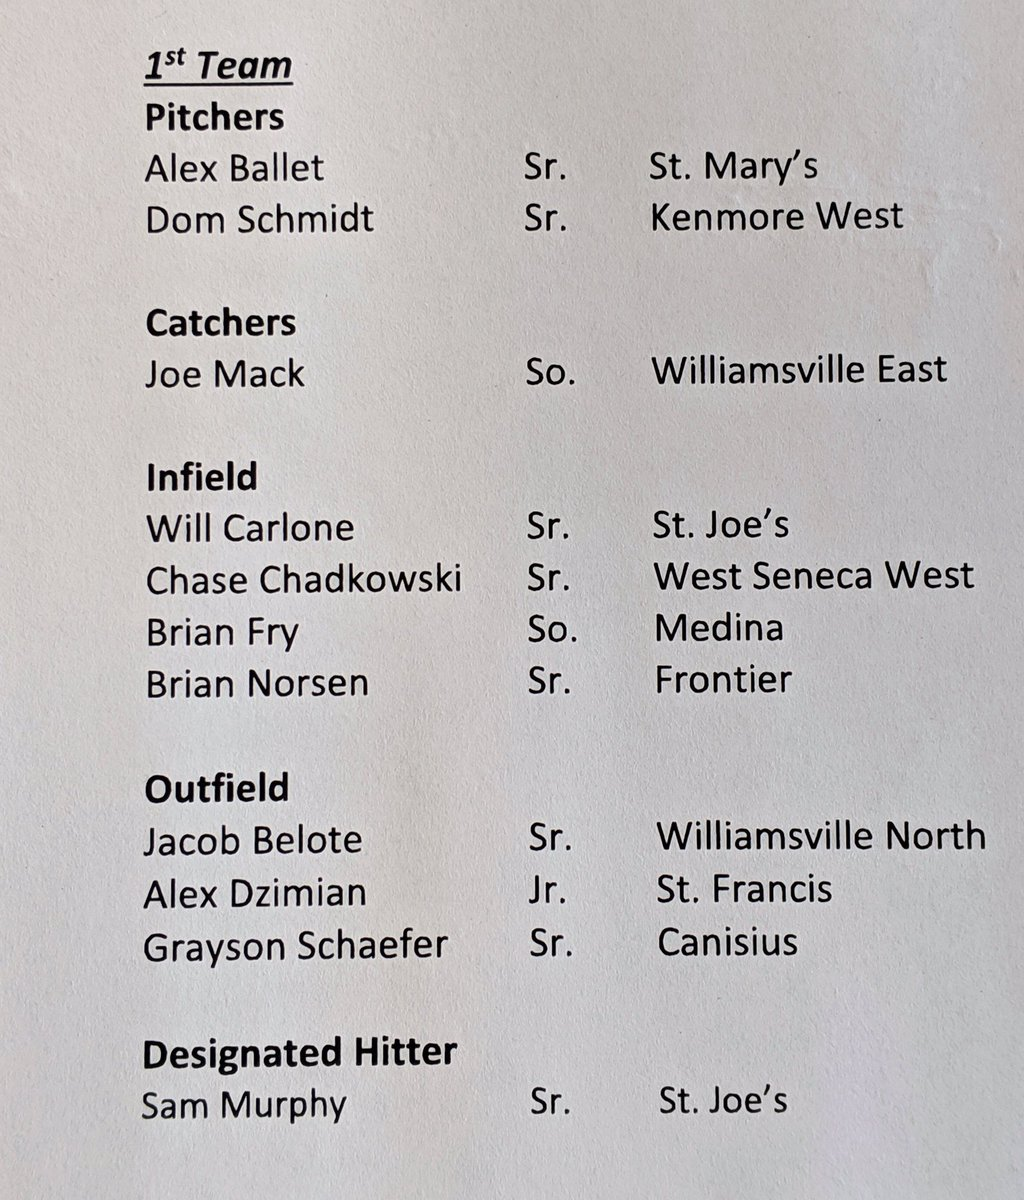 Congratulations to the all members of the WNY Baseball team